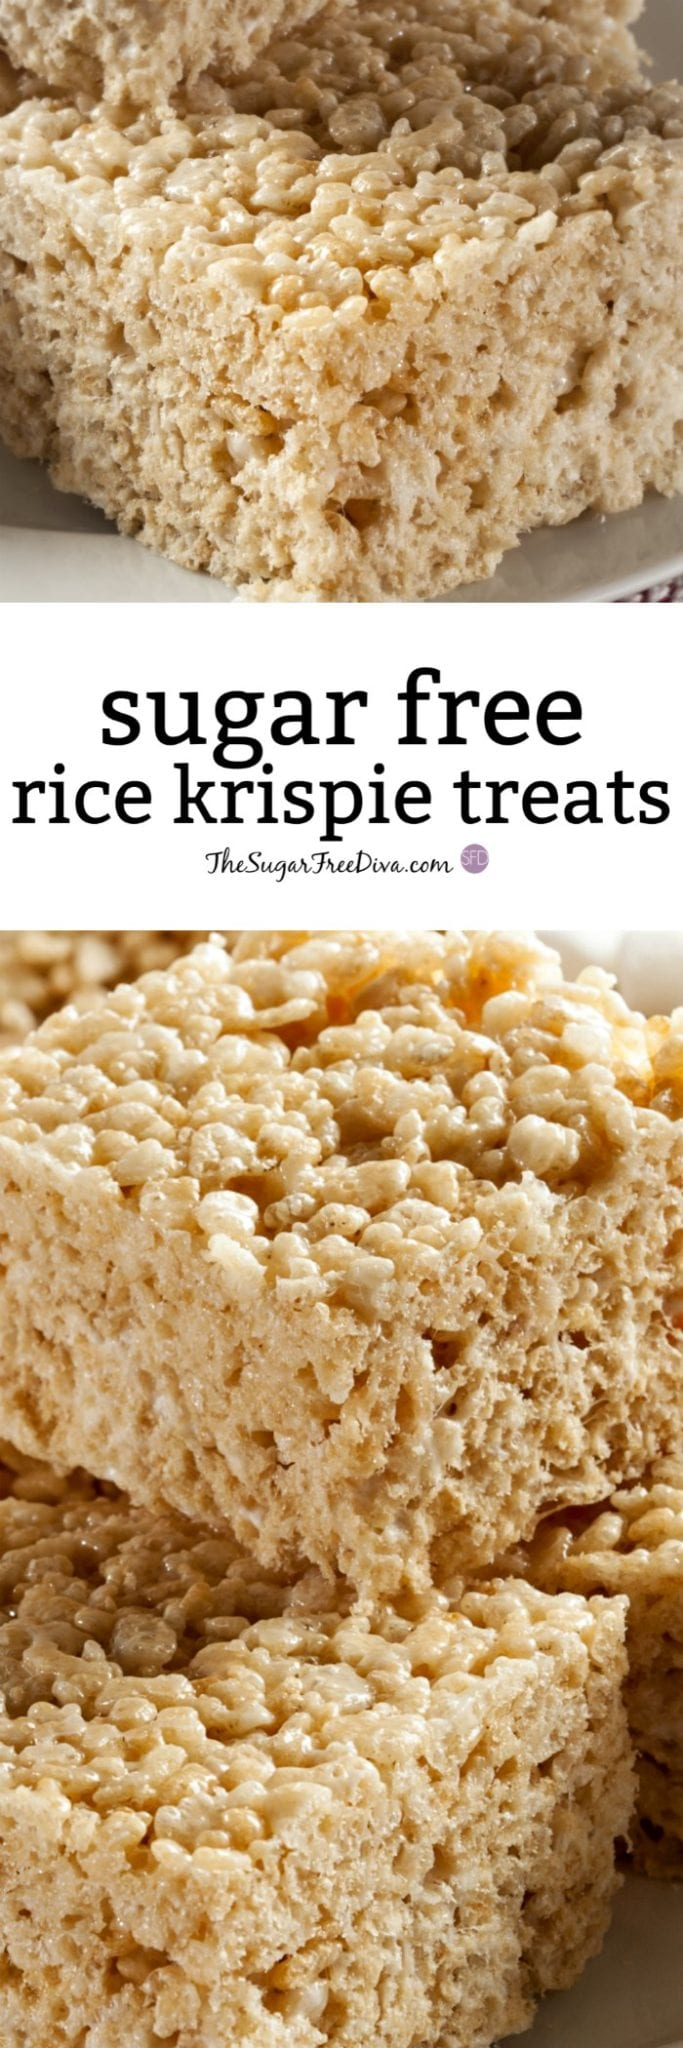 Sugar Free Rice Krispie Treats